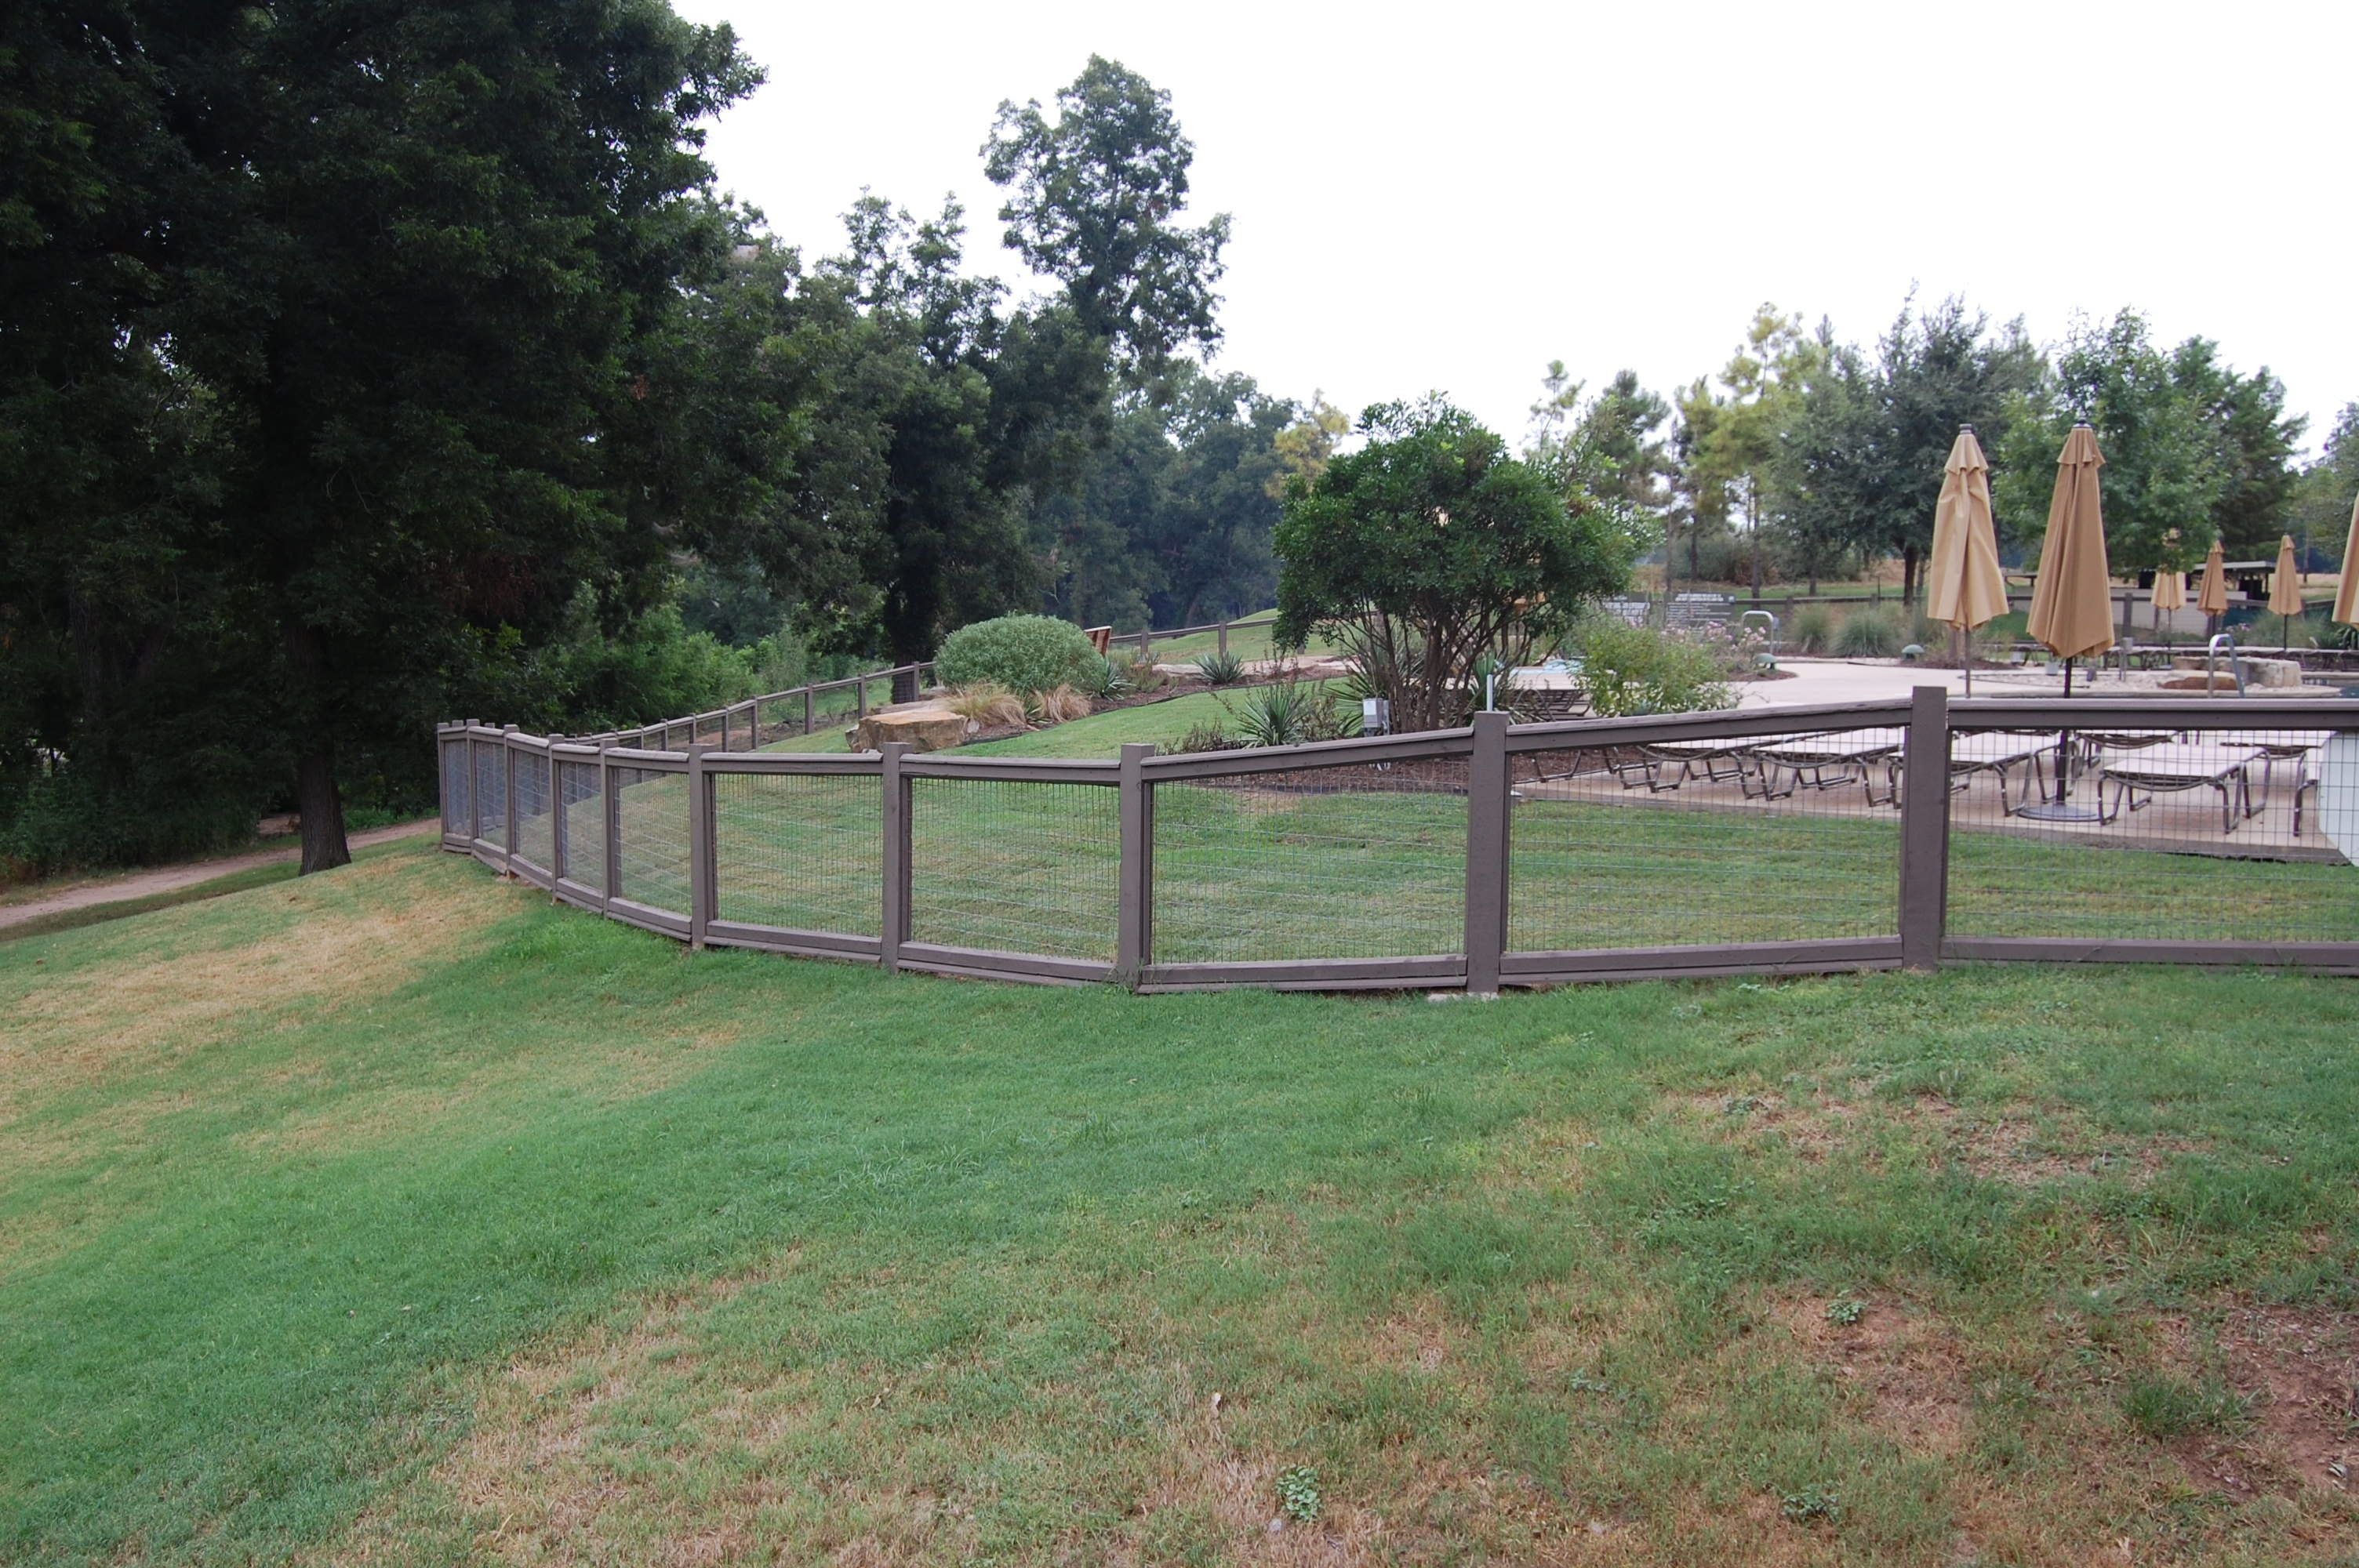 416e625c4734d8edc5ddb0b30b2bcf64 Inexpensive Fencing Ideas For Backyards Diy on dog-friendly backyards, hgtv backyards, family-friendly backyards, inexpensive backyard projects, inexpensive metal fencing, inexpensive fencing solutions, inexpensive wire fencing,